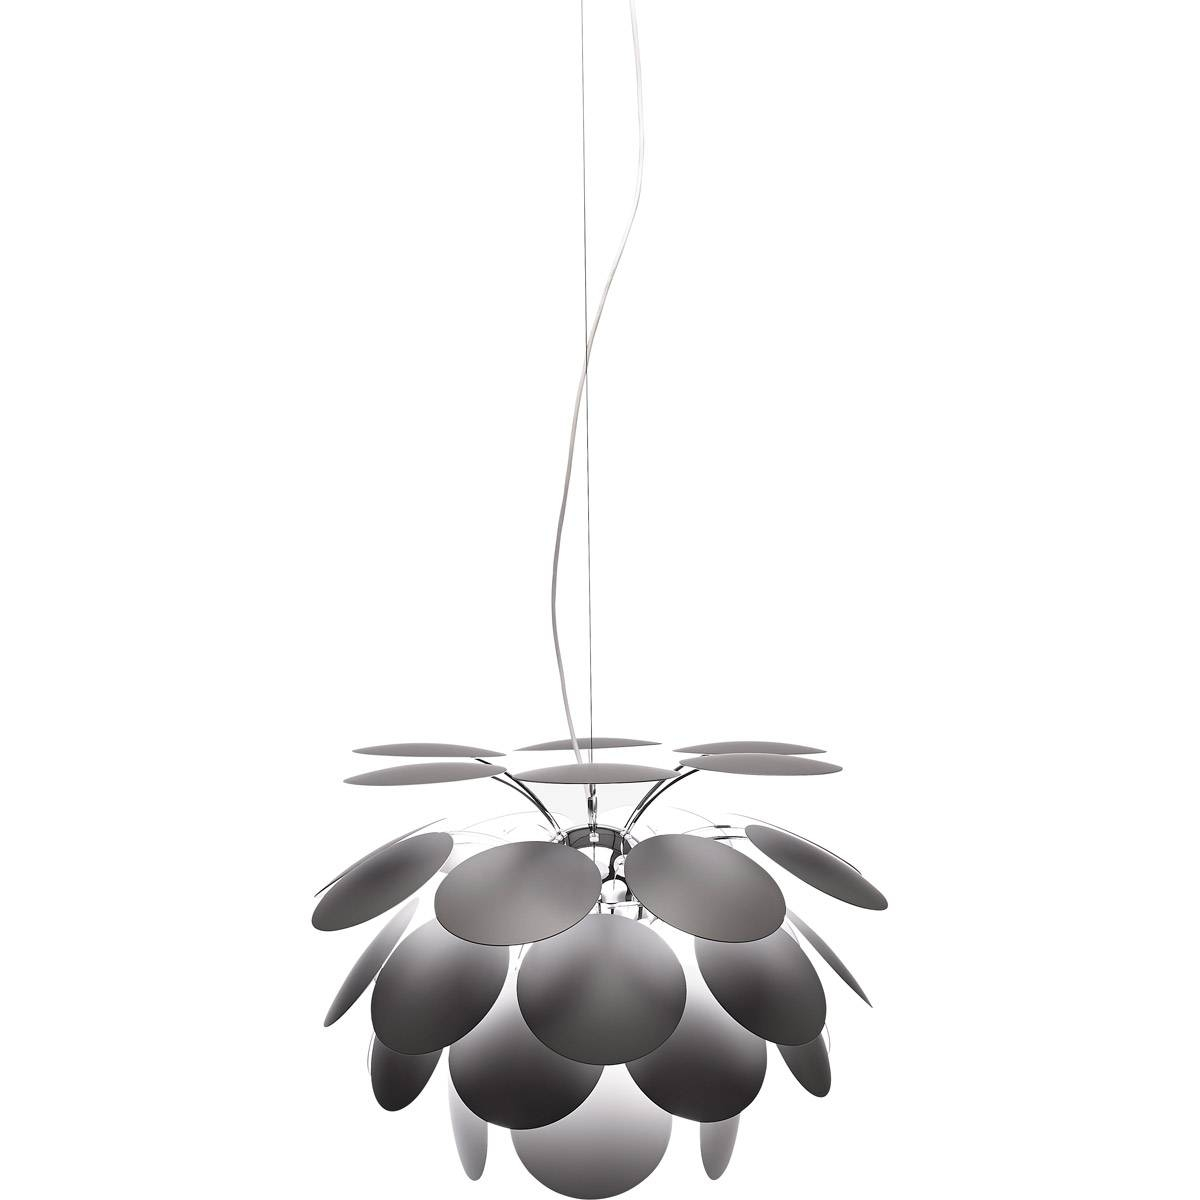 Discoco Pendant 68 | Marset | Horne pertaining to Discoco Pendant Lights (Image 8 of 15)